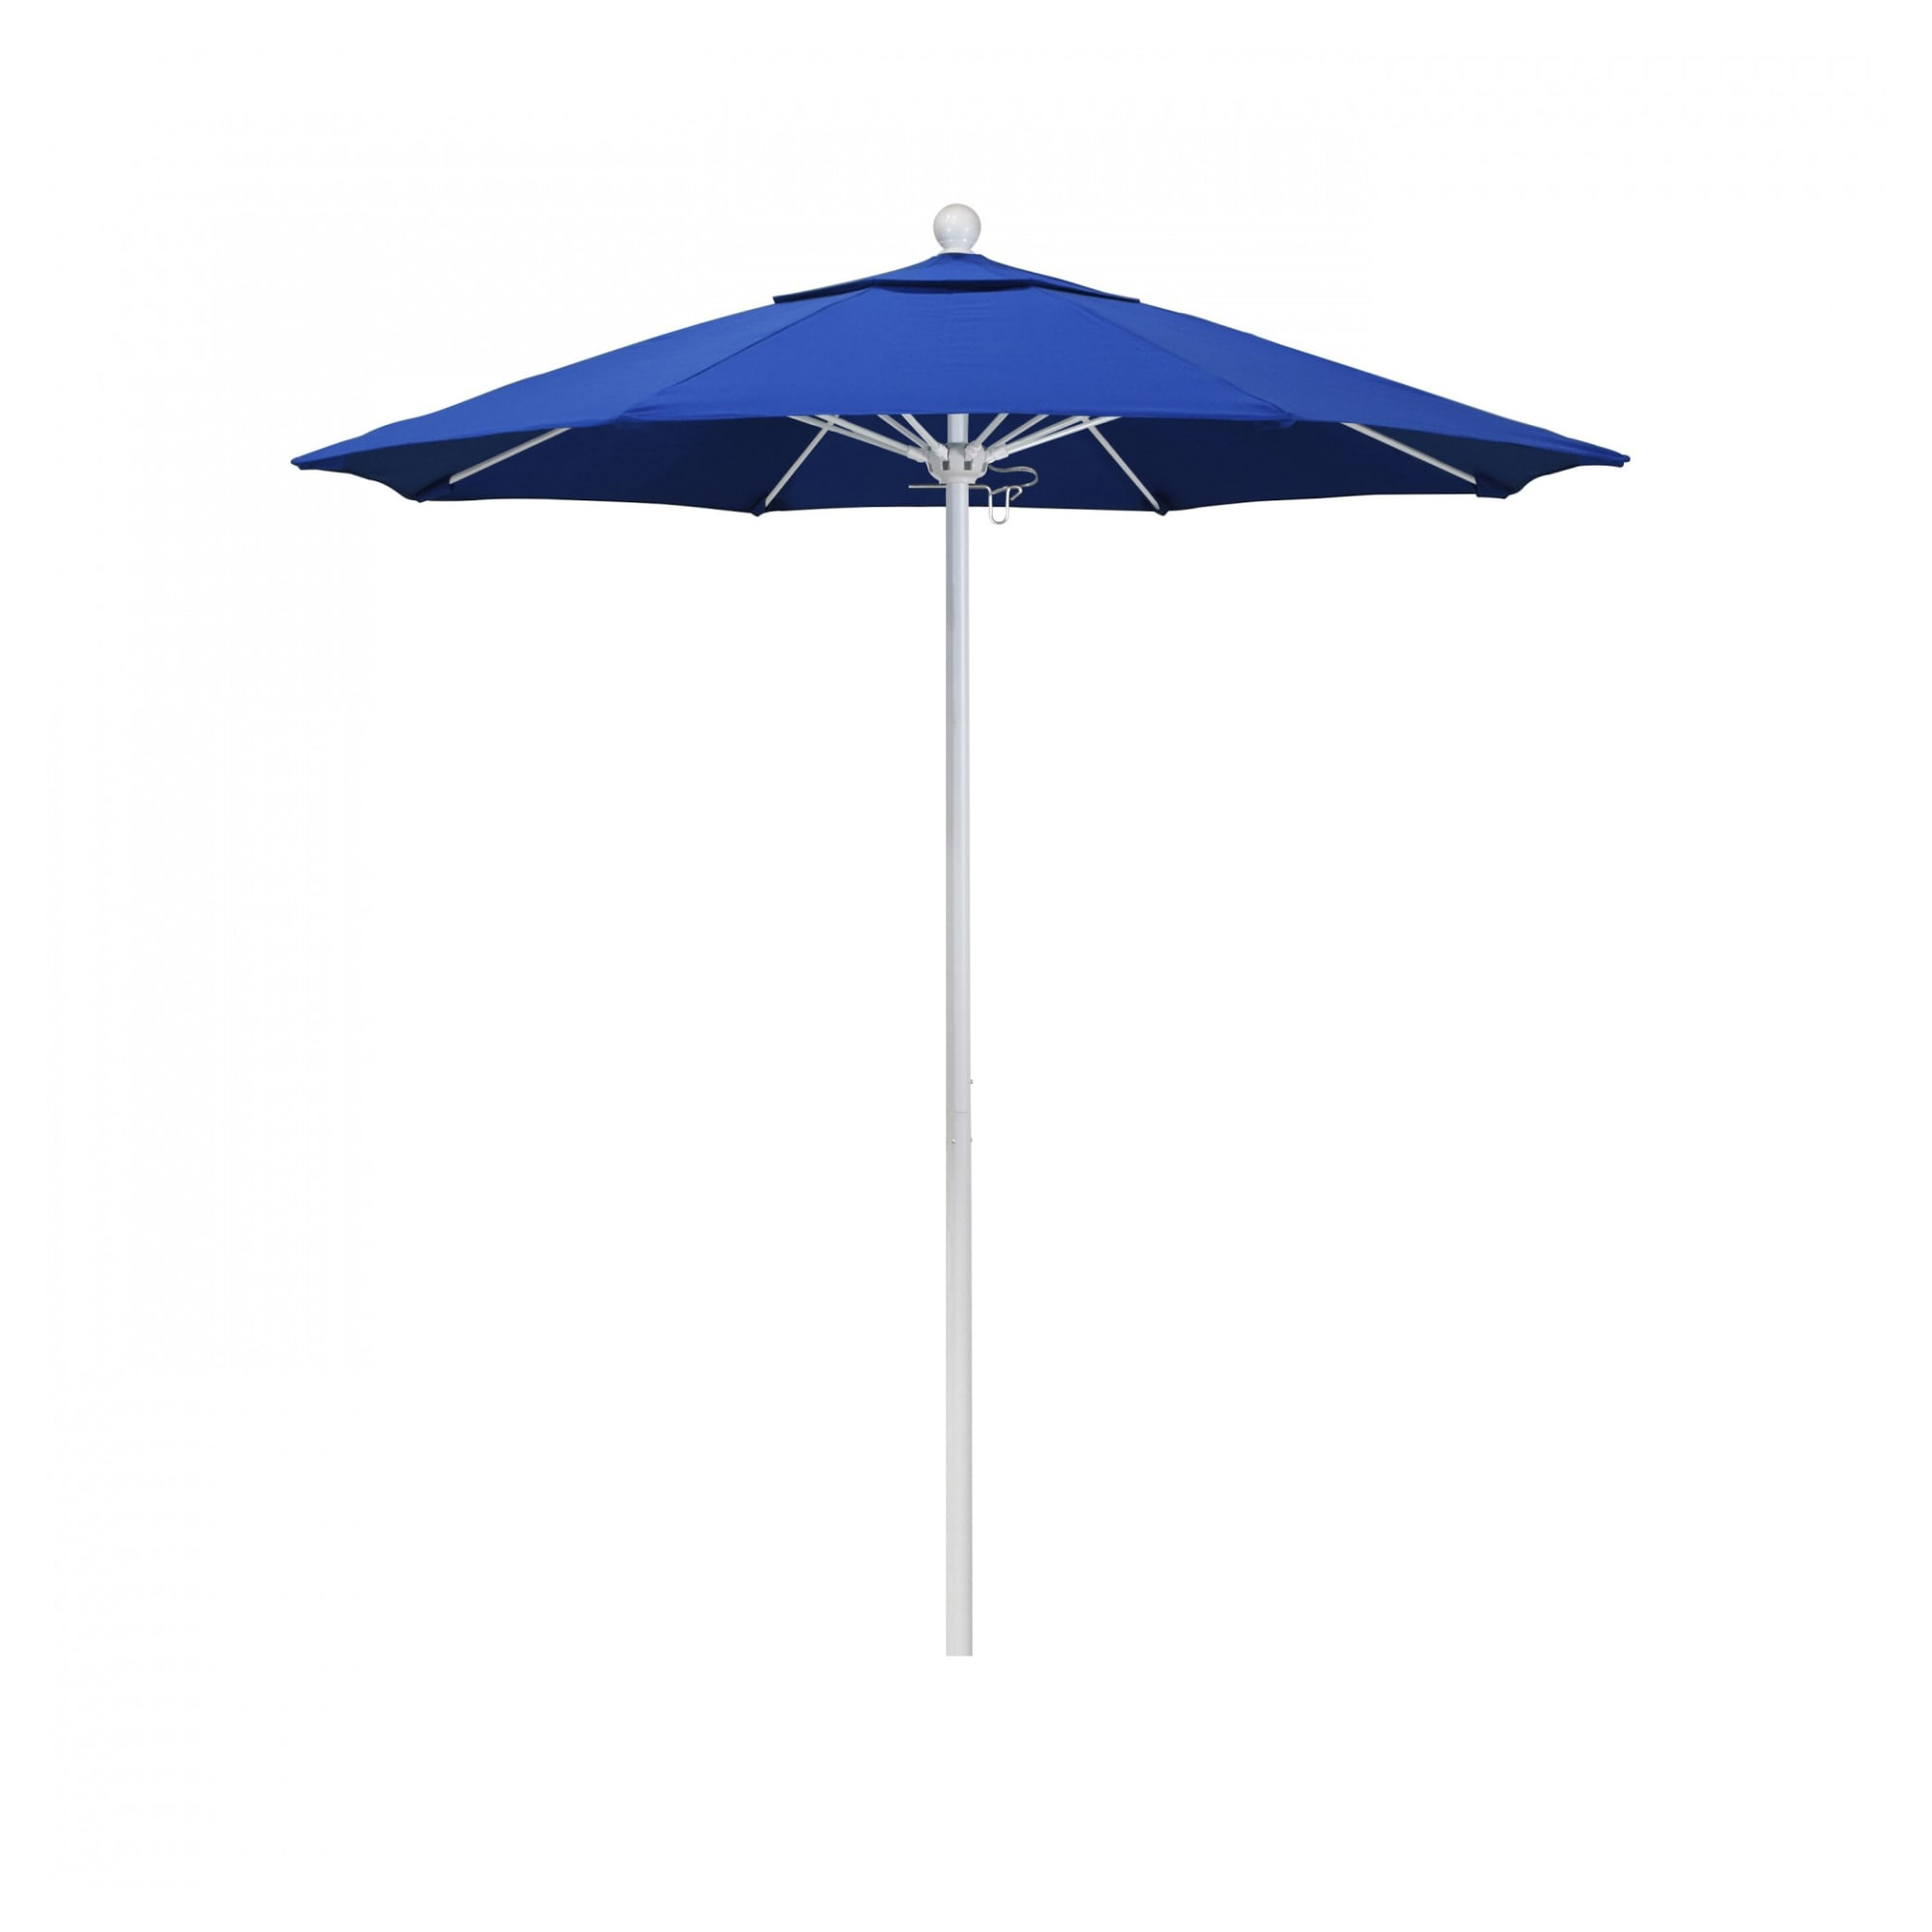 9 ft Casey Matted White Aluminum Commercial Umbrella with 9 ft Casey Matted White Aluminum Commercial Umbrella